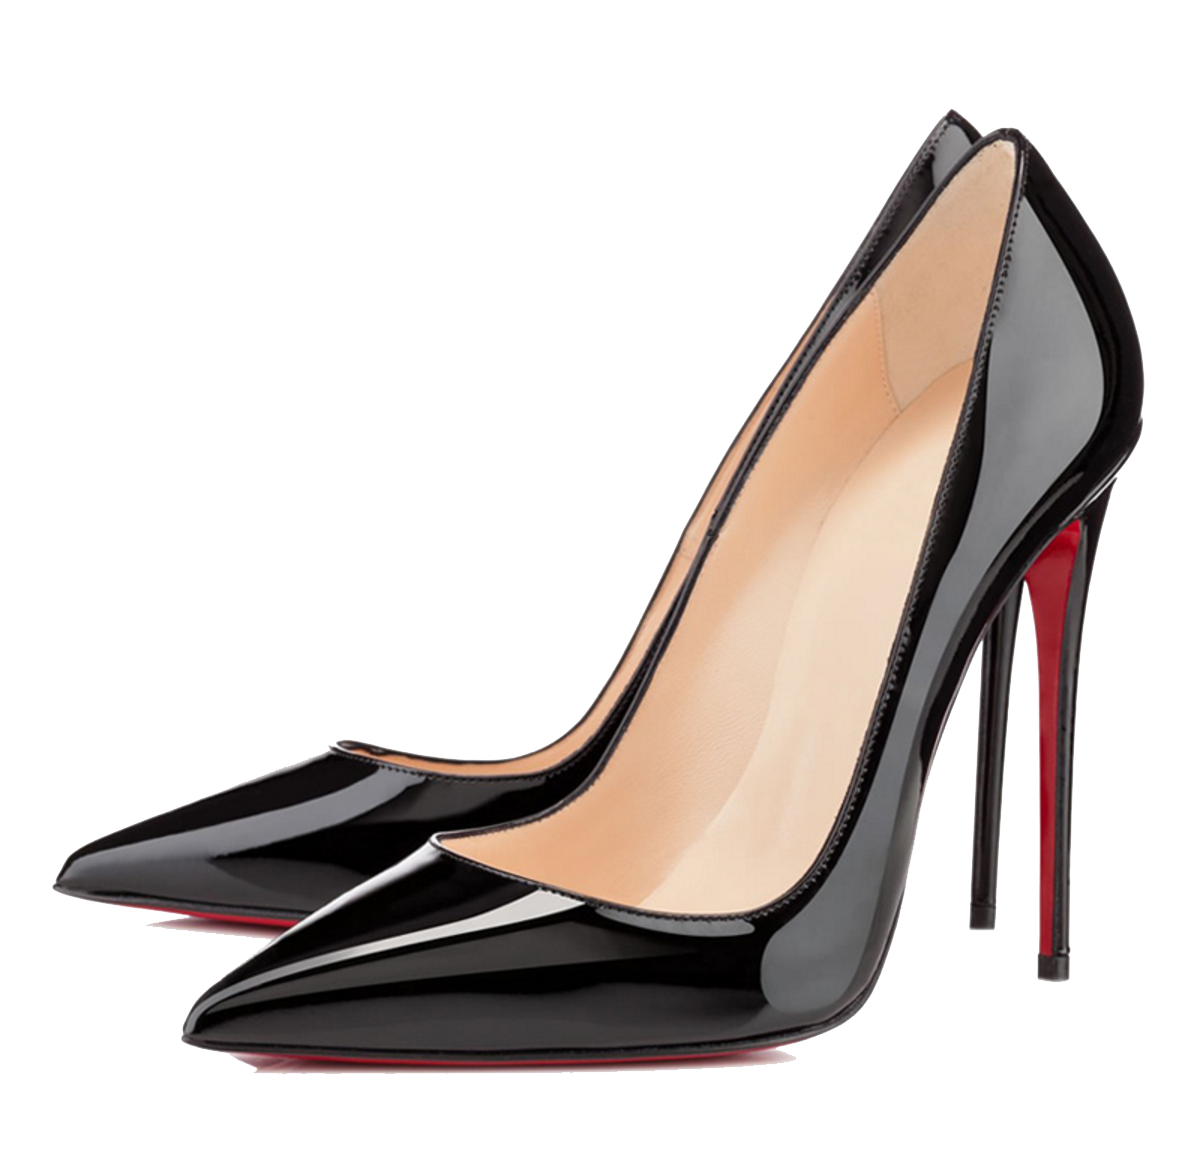 Women shoes png downloads image #45080.